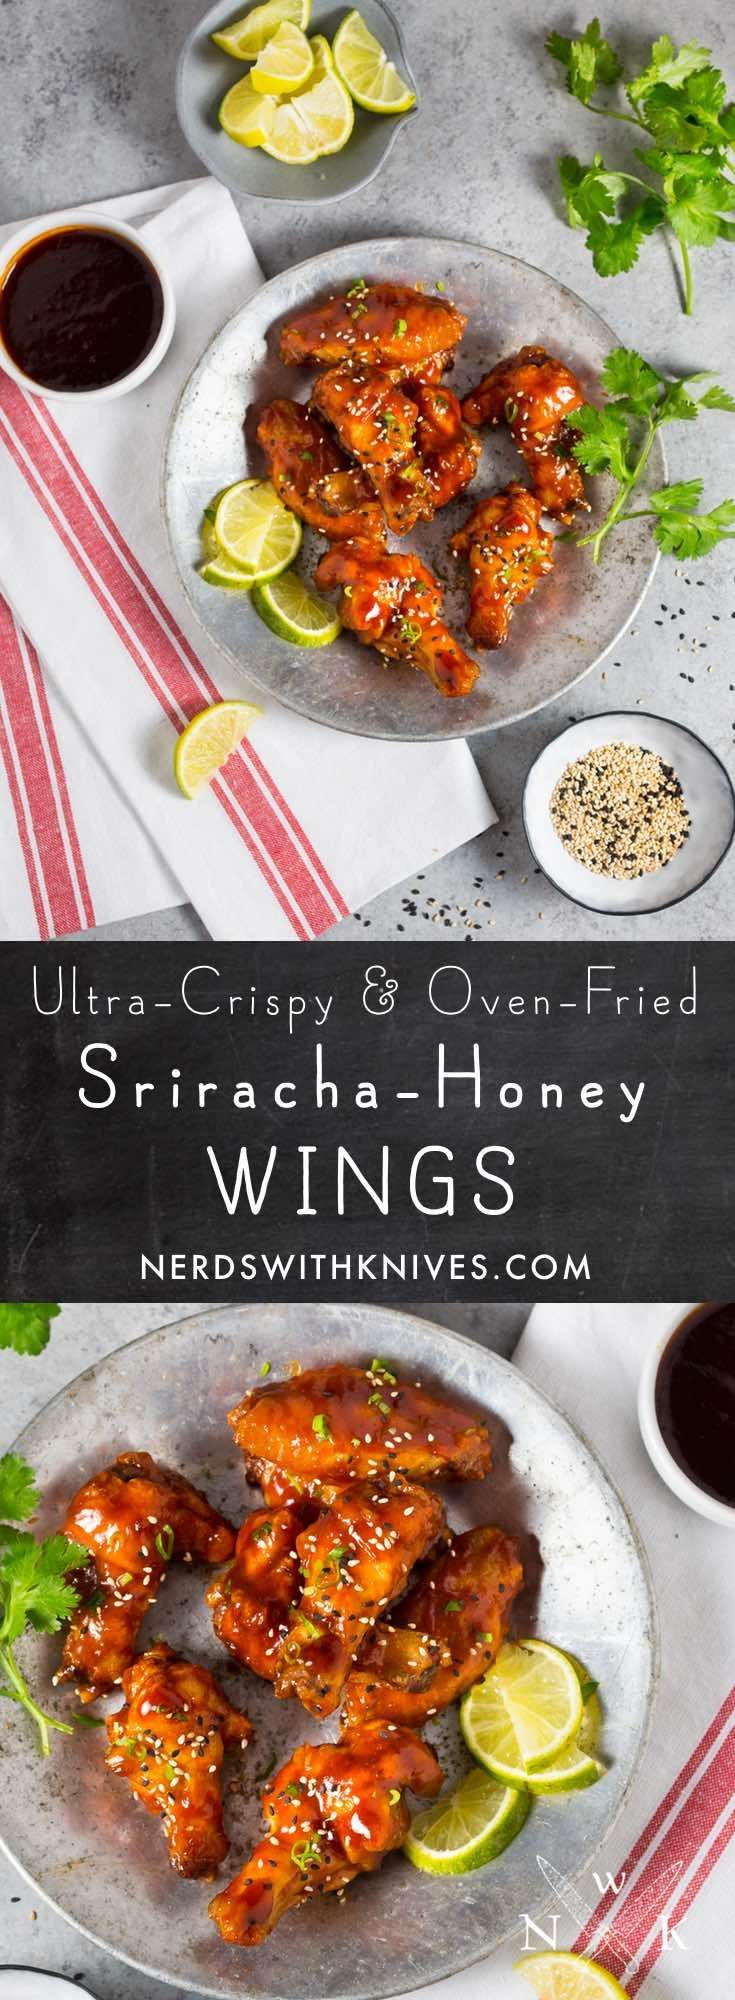 Seriously crispy and coated with a sweet and spicy Sriracha-honey glaze, these oven-baked wings rival fried ones any day. This is game day food done right.